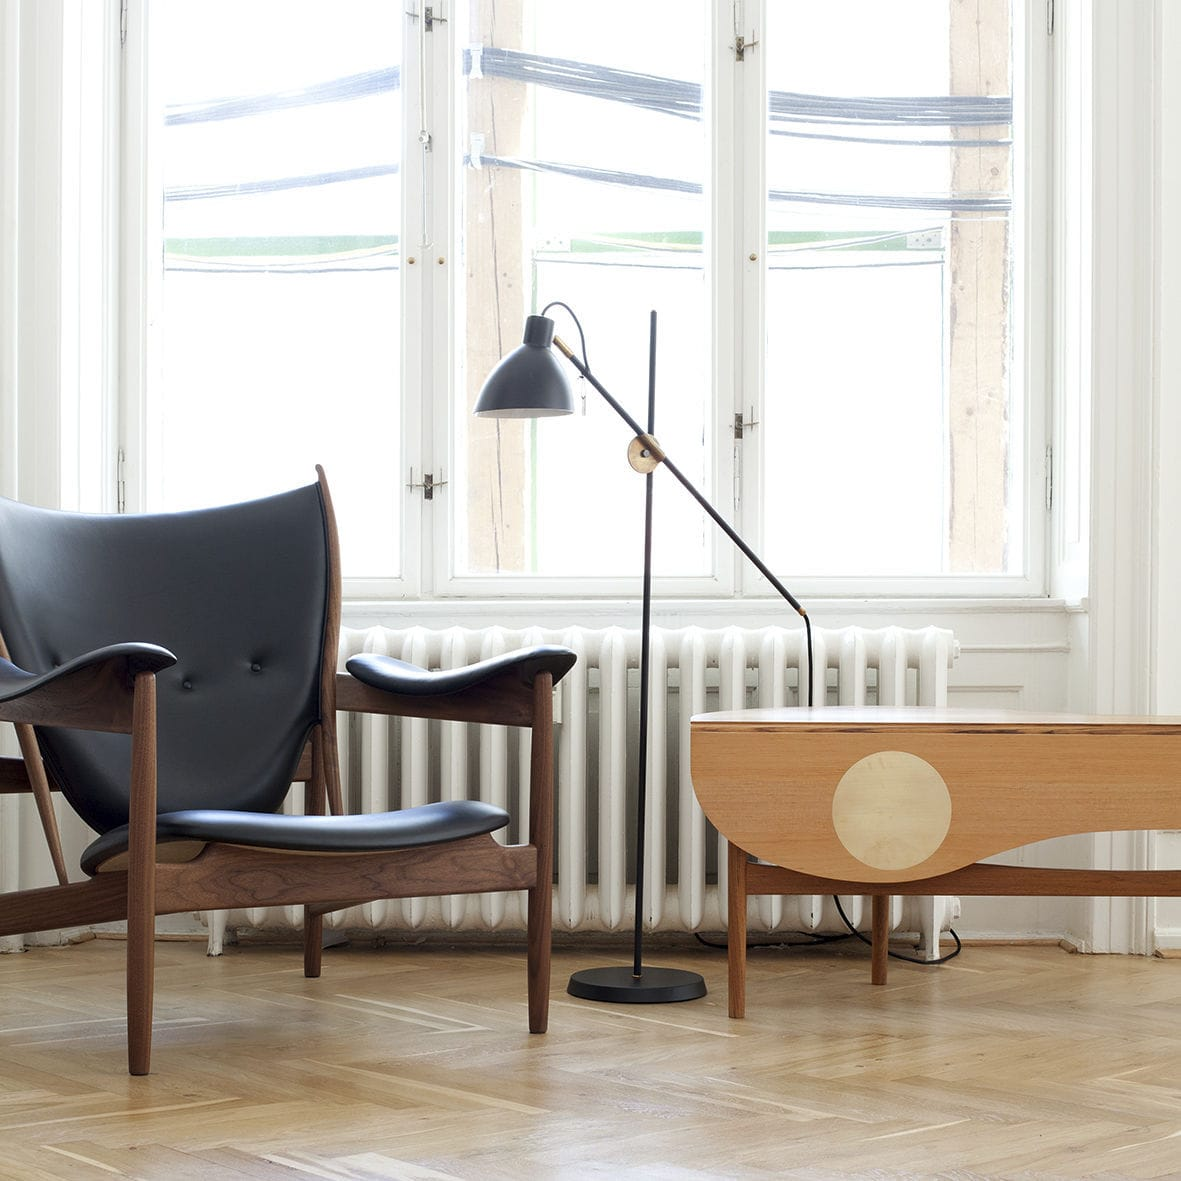 Excellent Scandinavian Design Armchair Teak Walnut Leather Gmtry Best Dining Table And Chair Ideas Images Gmtryco